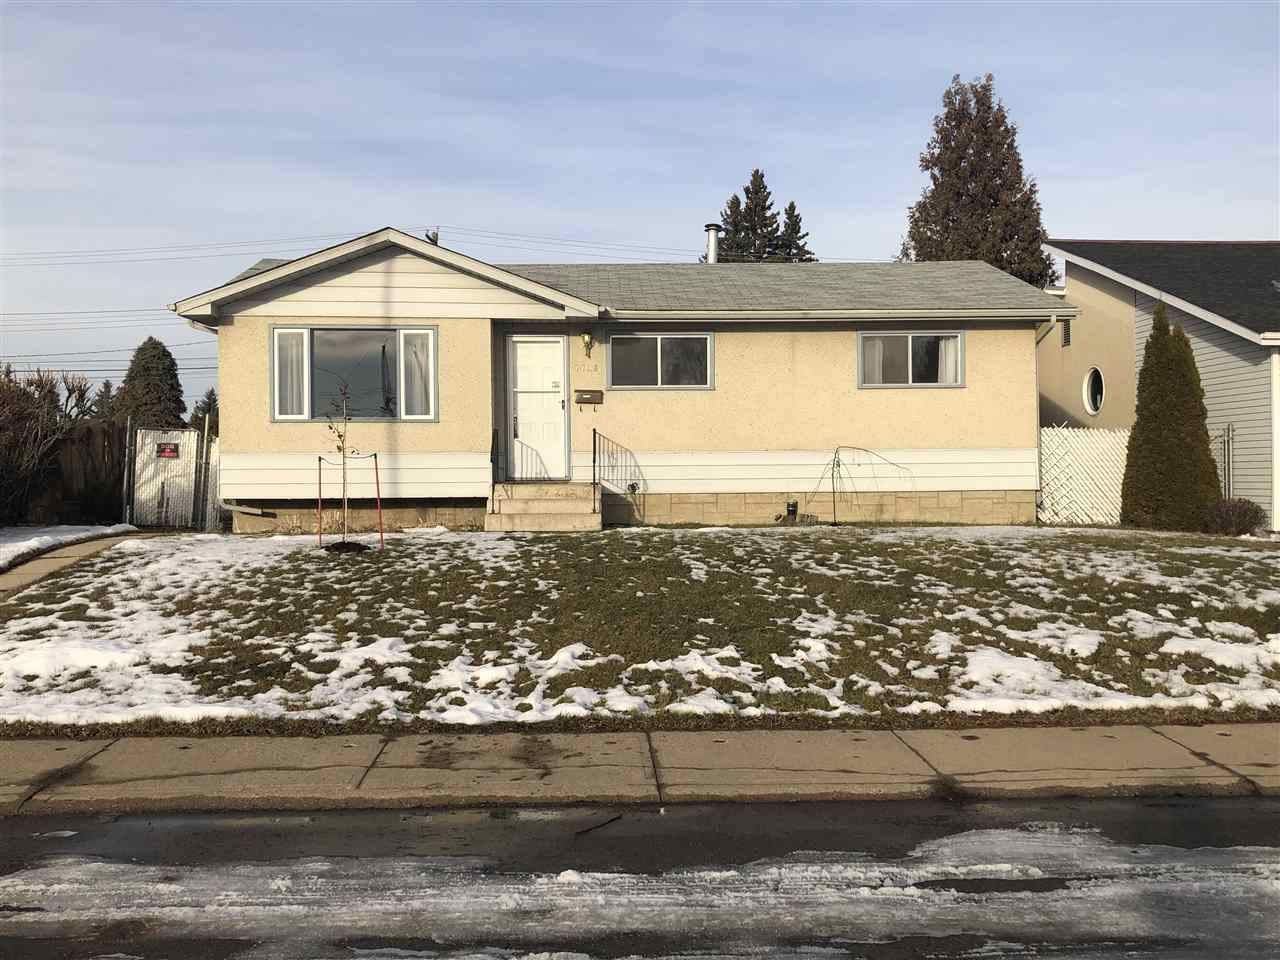 7708 136 Avenue NW, 3 bed, 1 bath, at $249,900